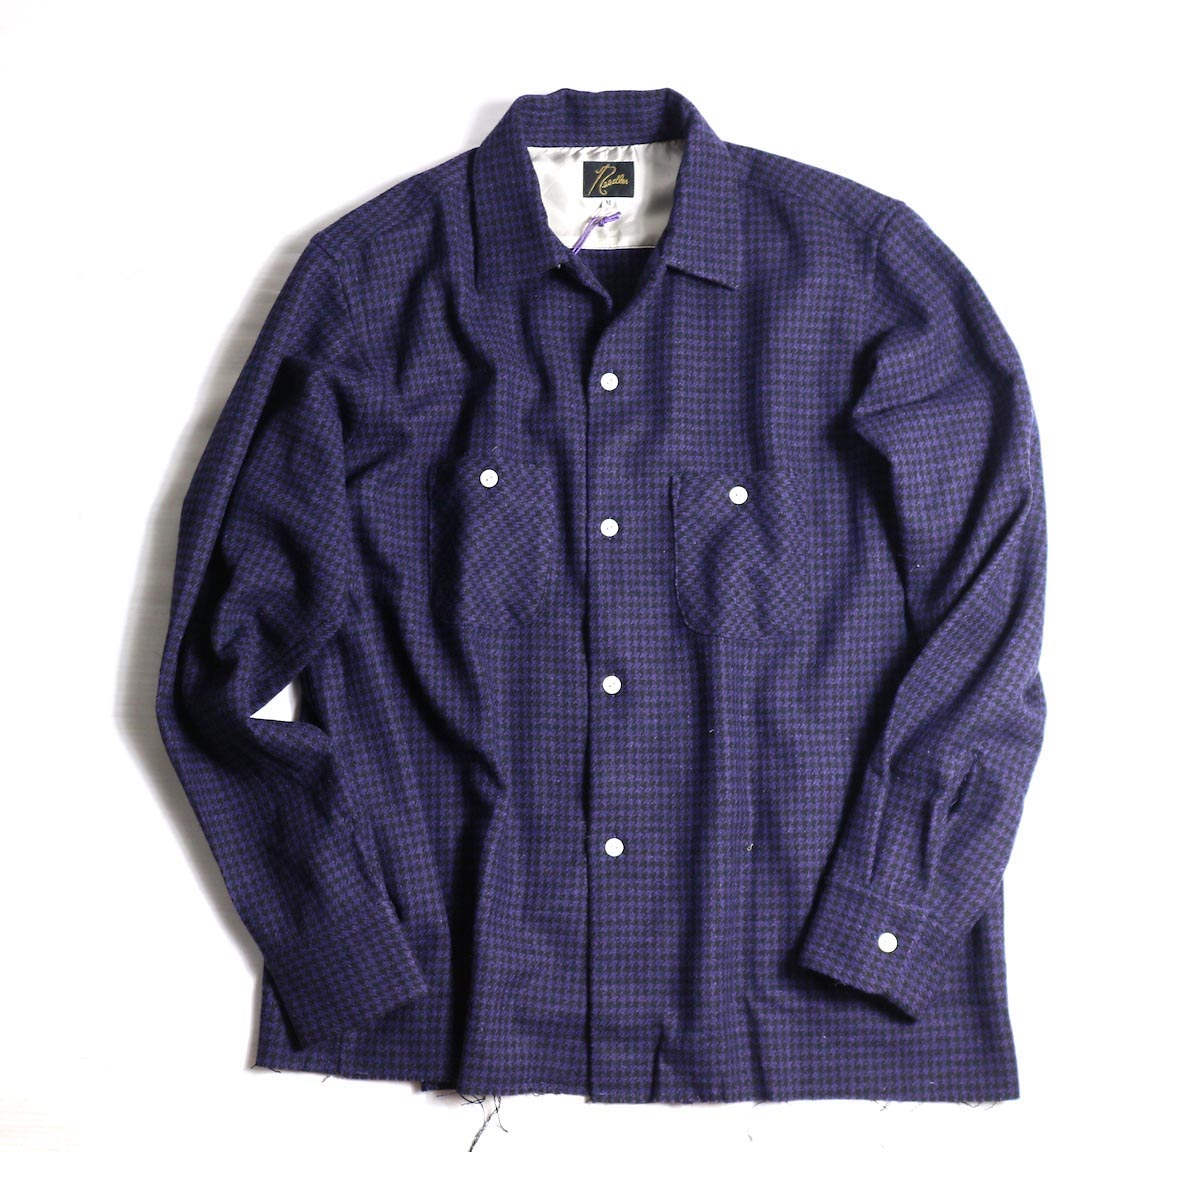 NEEDLES / CUT-OFF BOTTOM ONE-UP SHIRT (PURPLE)